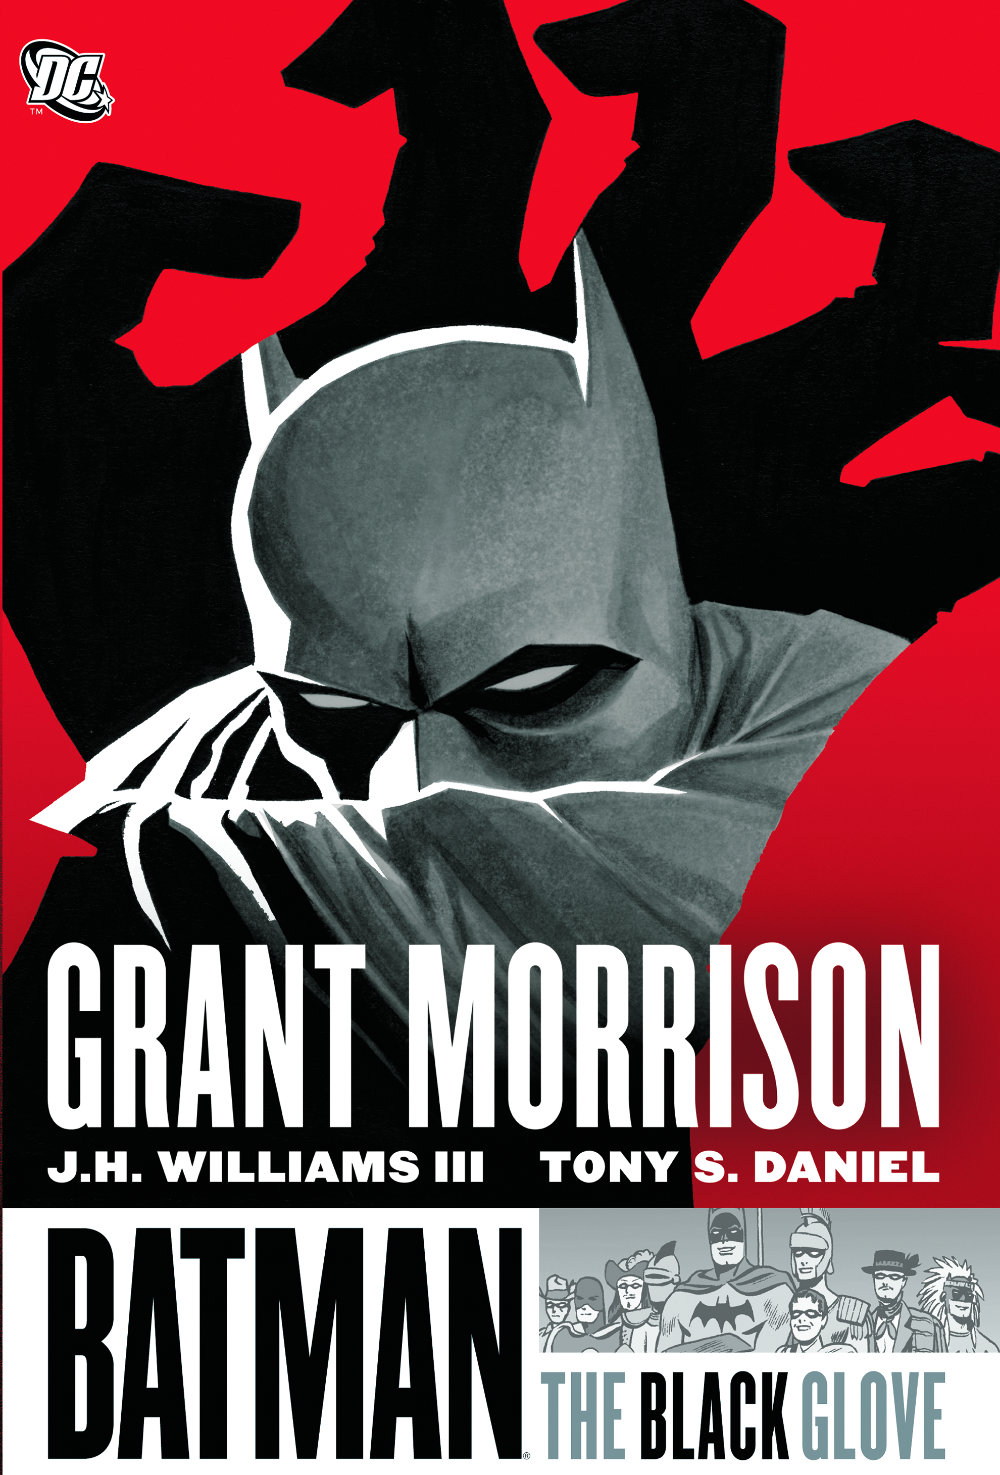 From A Library – Batman: The Black Glove